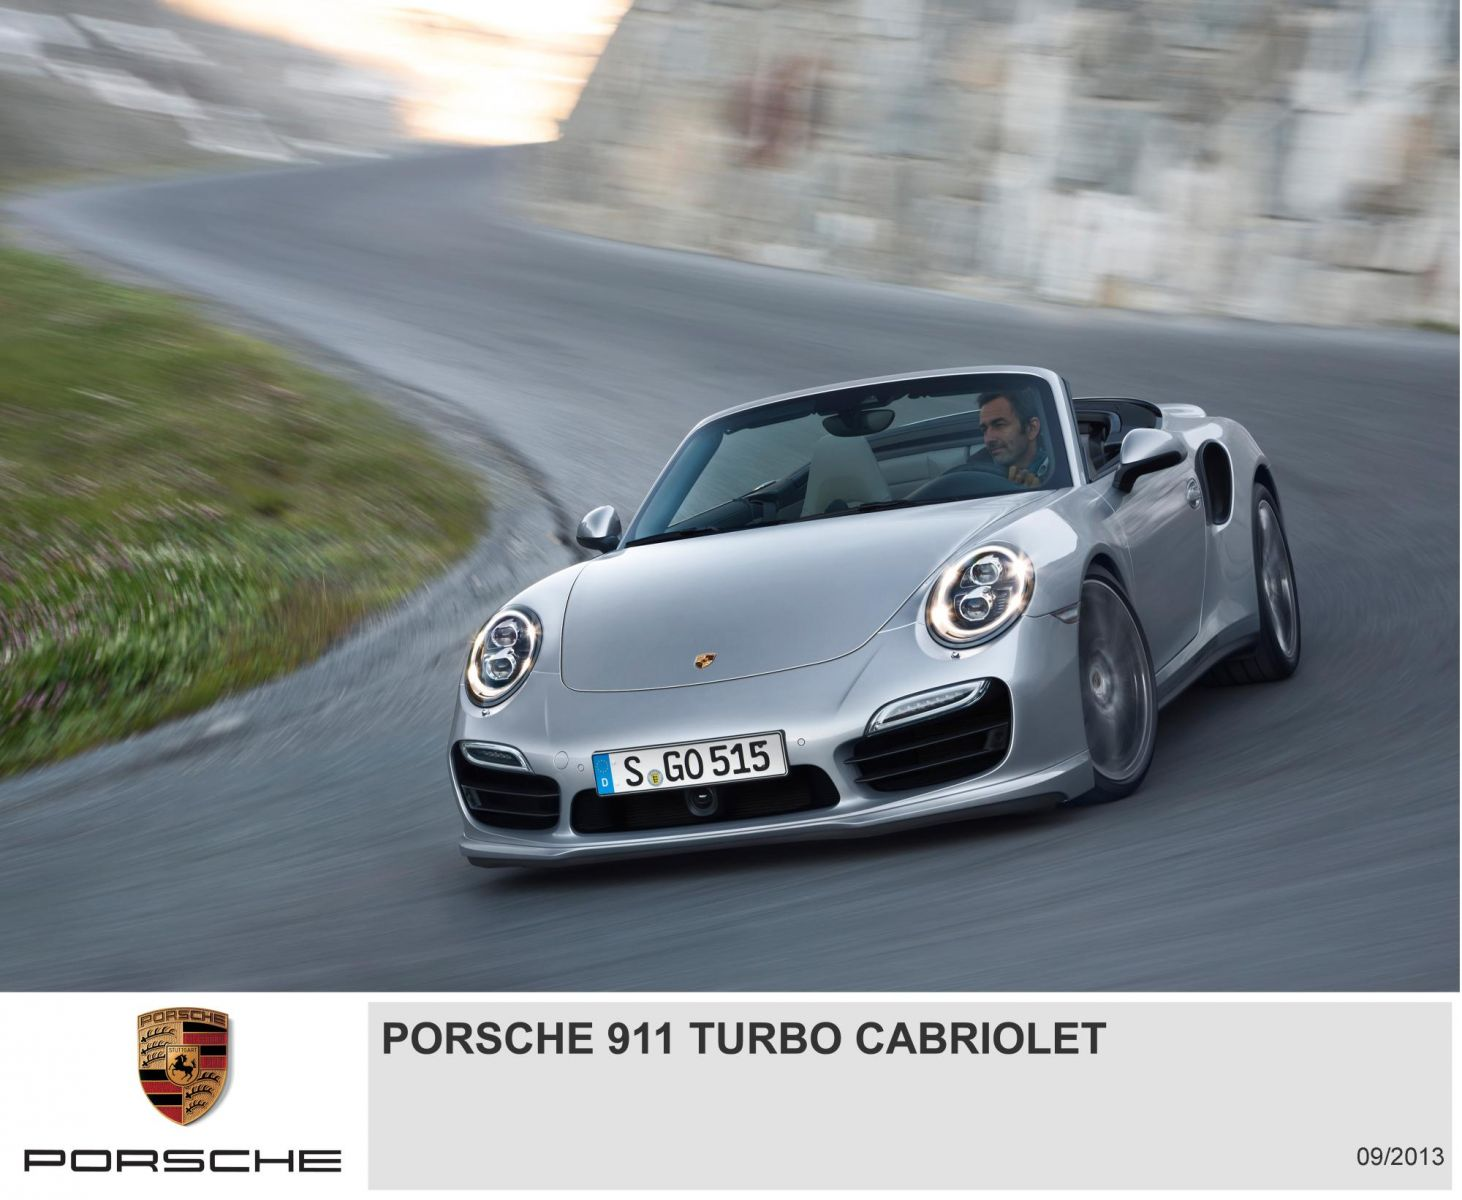 Porsche 911 Turbo Cabriolet - Action shot